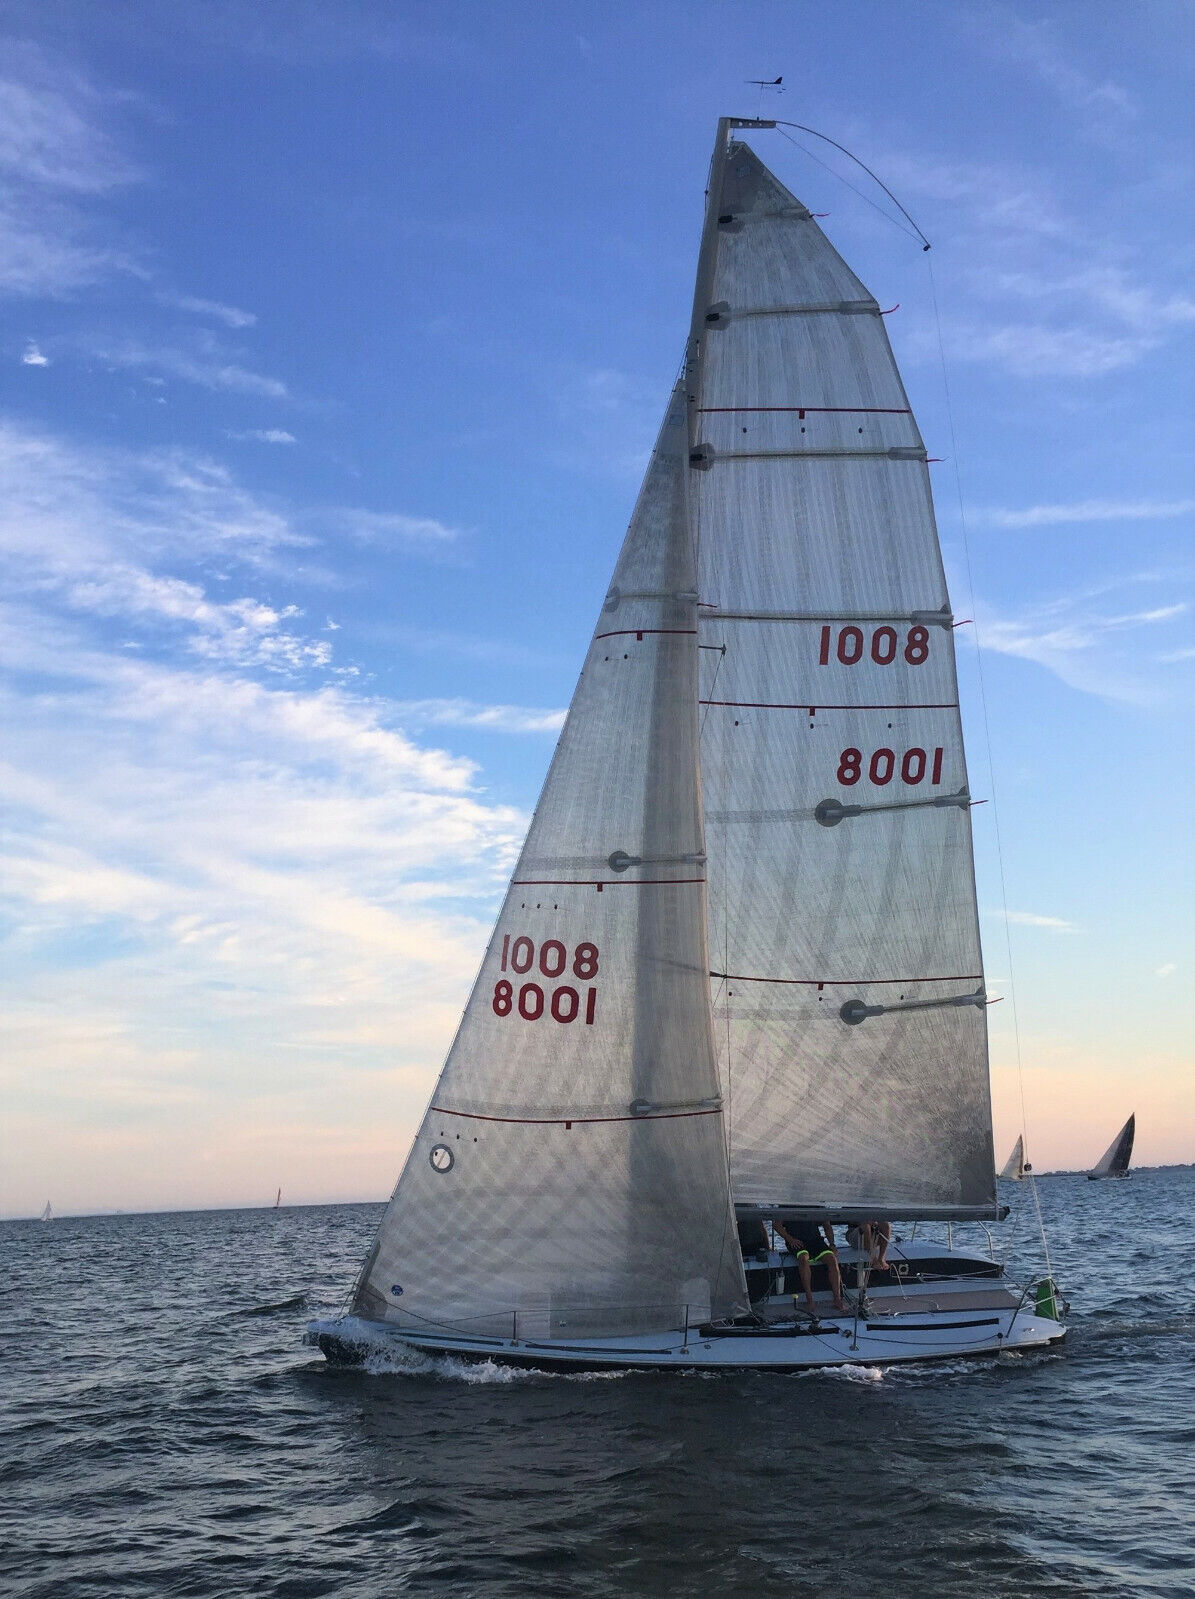 1998 Carrera 280 race sailboat, sport boat with trailer